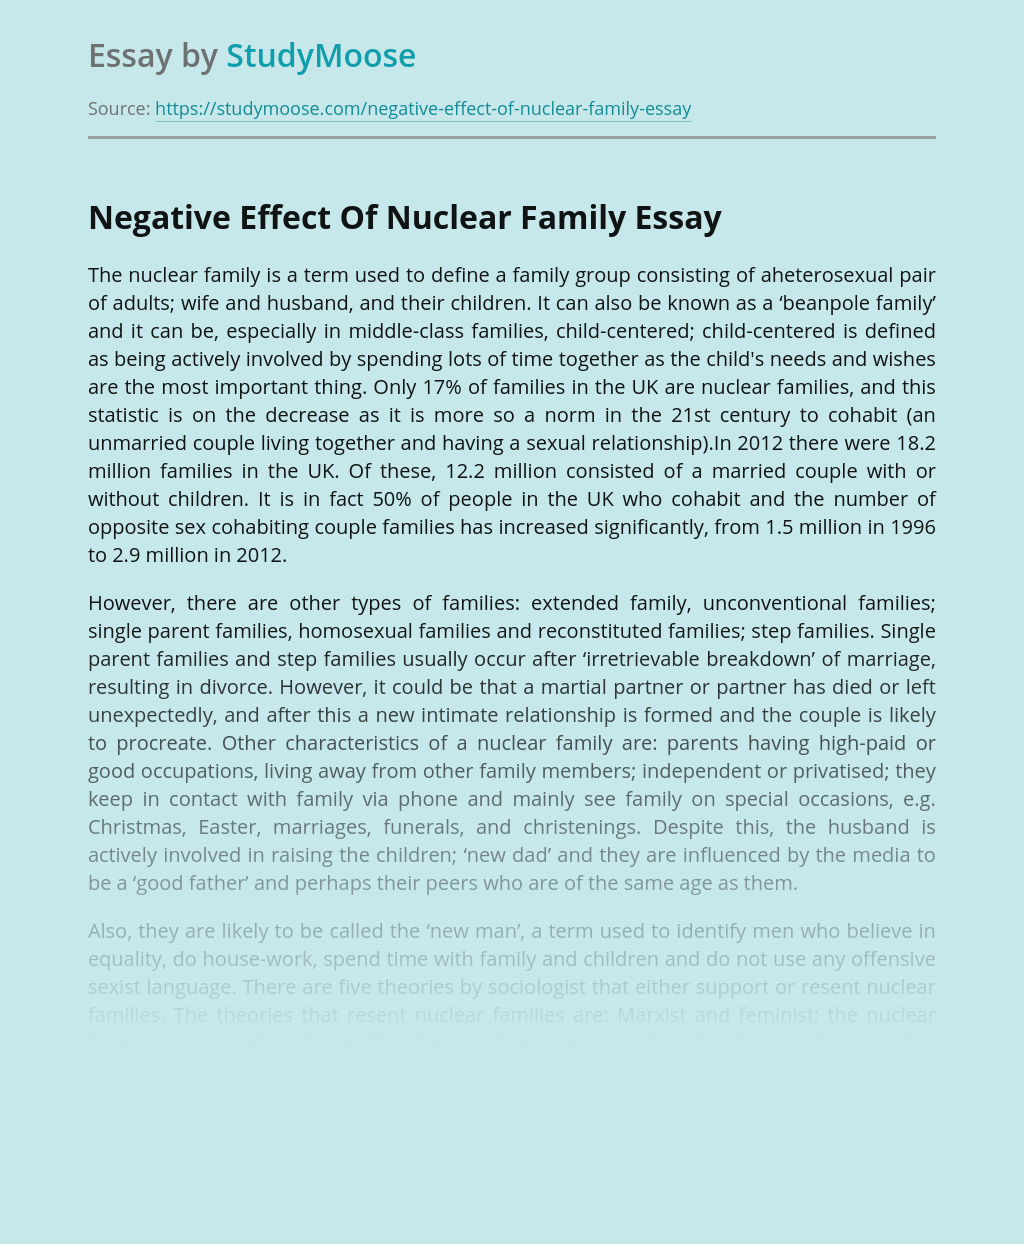 Negative Effect Of Nuclear Family